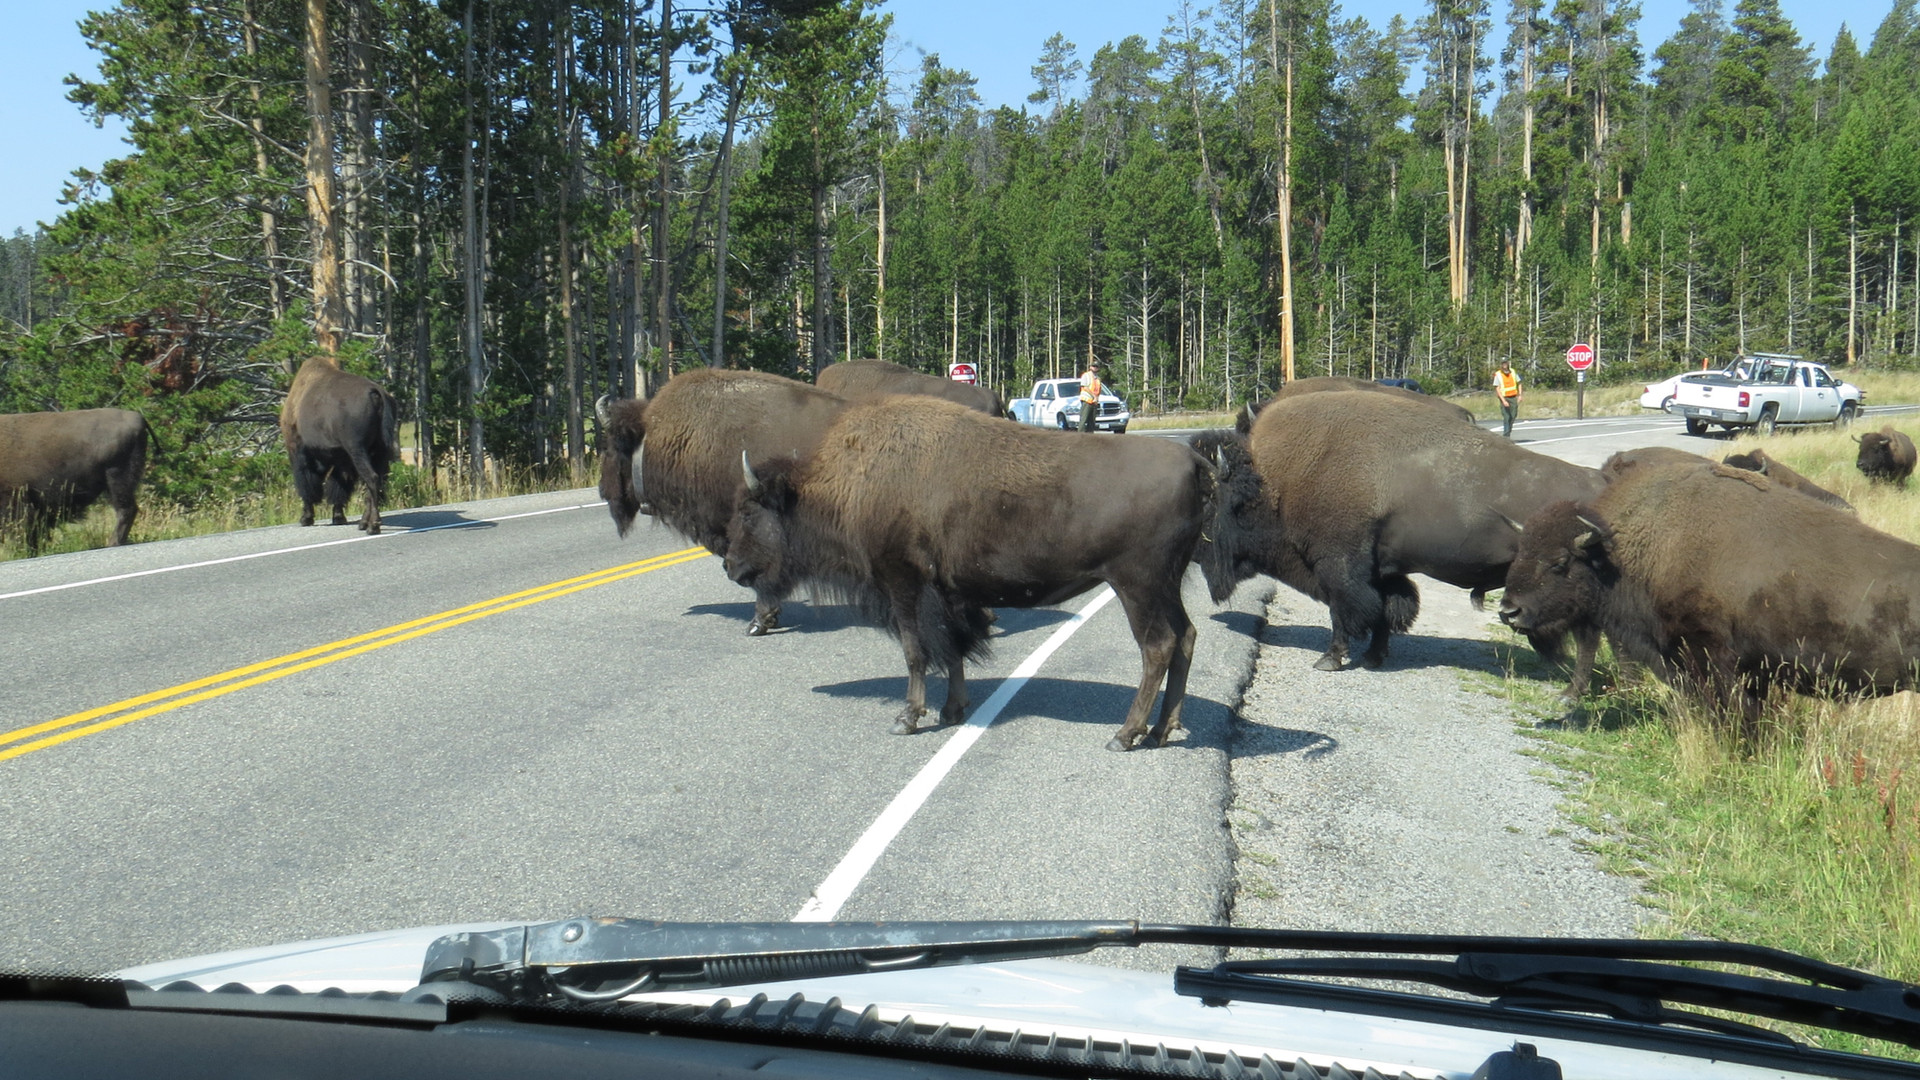 yellowstone-park-tour-bison-herd.JPG